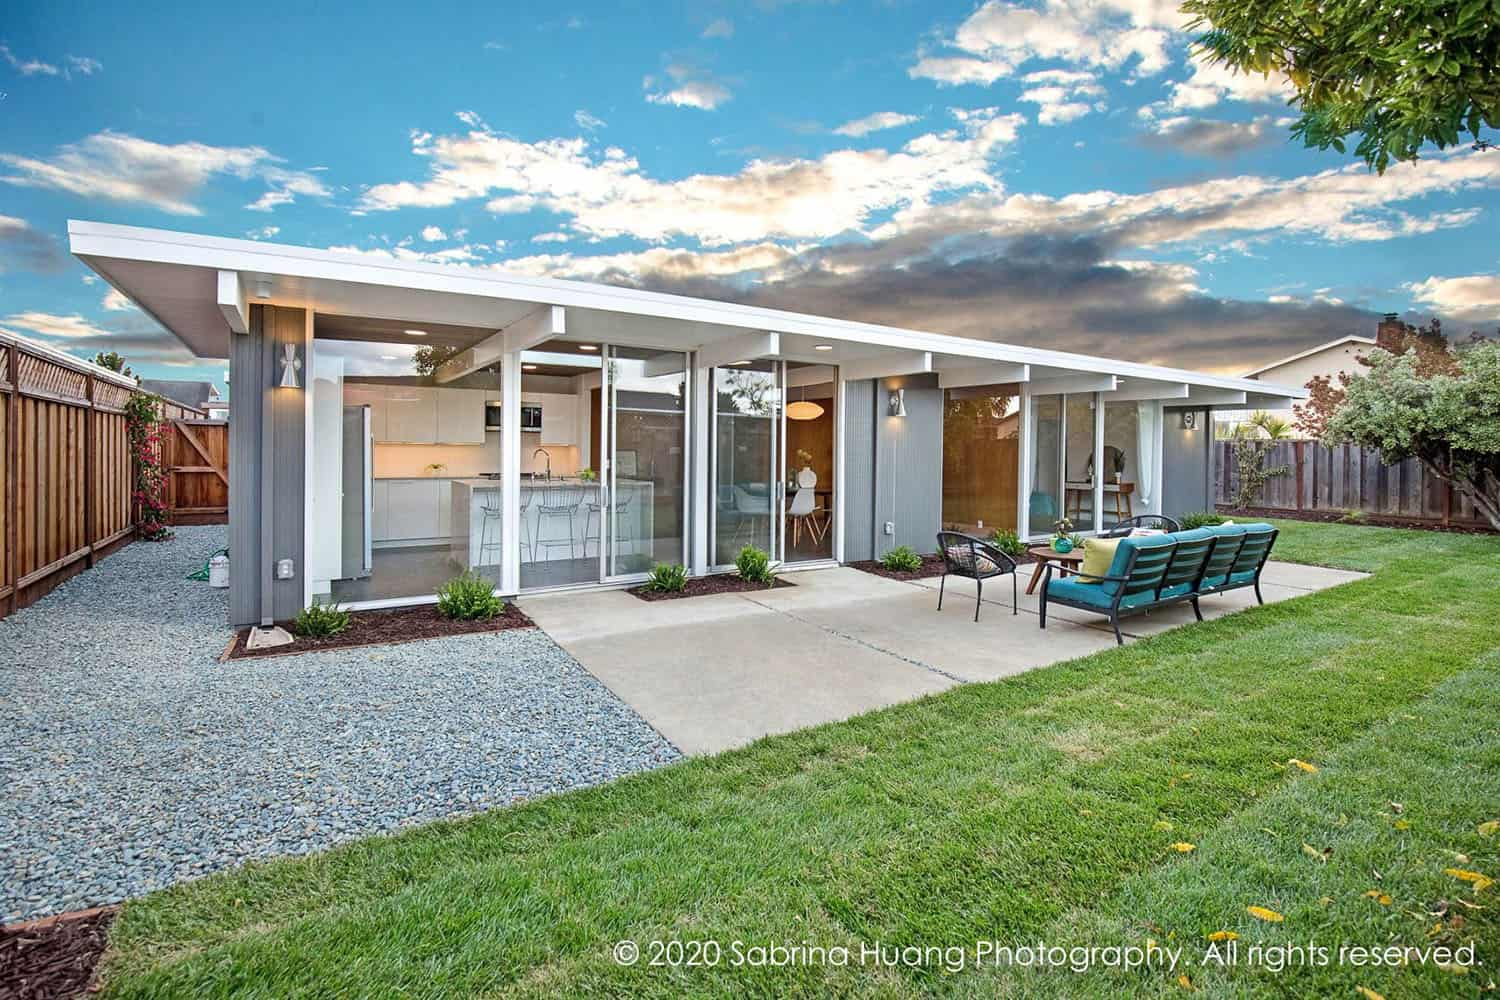 California Eichler house gets budget-friendly remodel with high-end looks